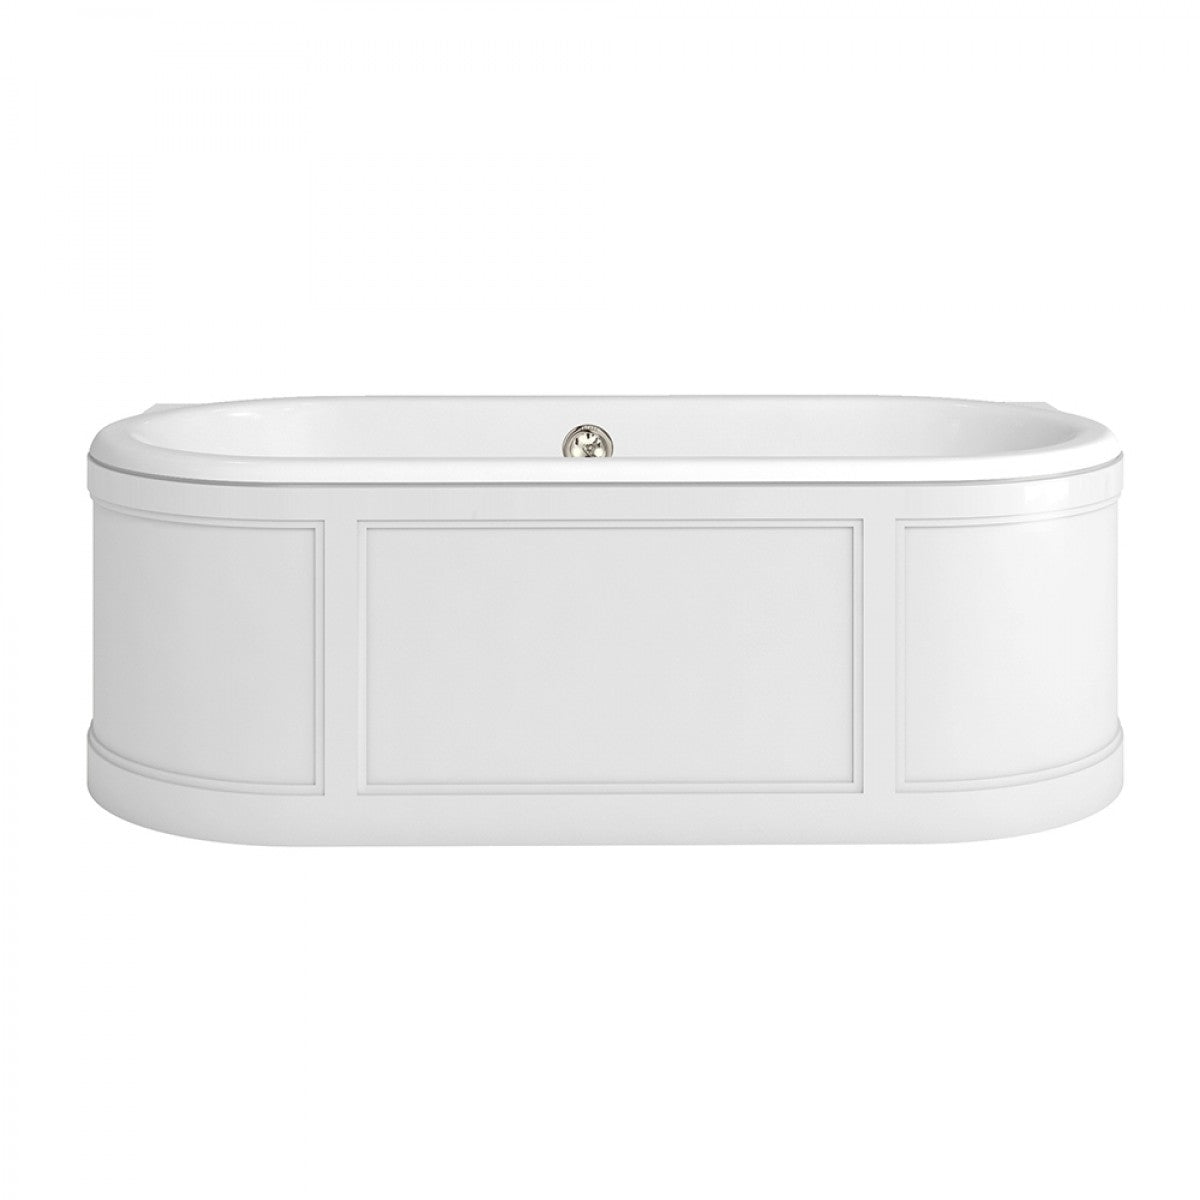 BURLINGTON LONDON BATH WITH CURVED SURROUND, OVERFLOW AND WASTE - 1800 X 850MM